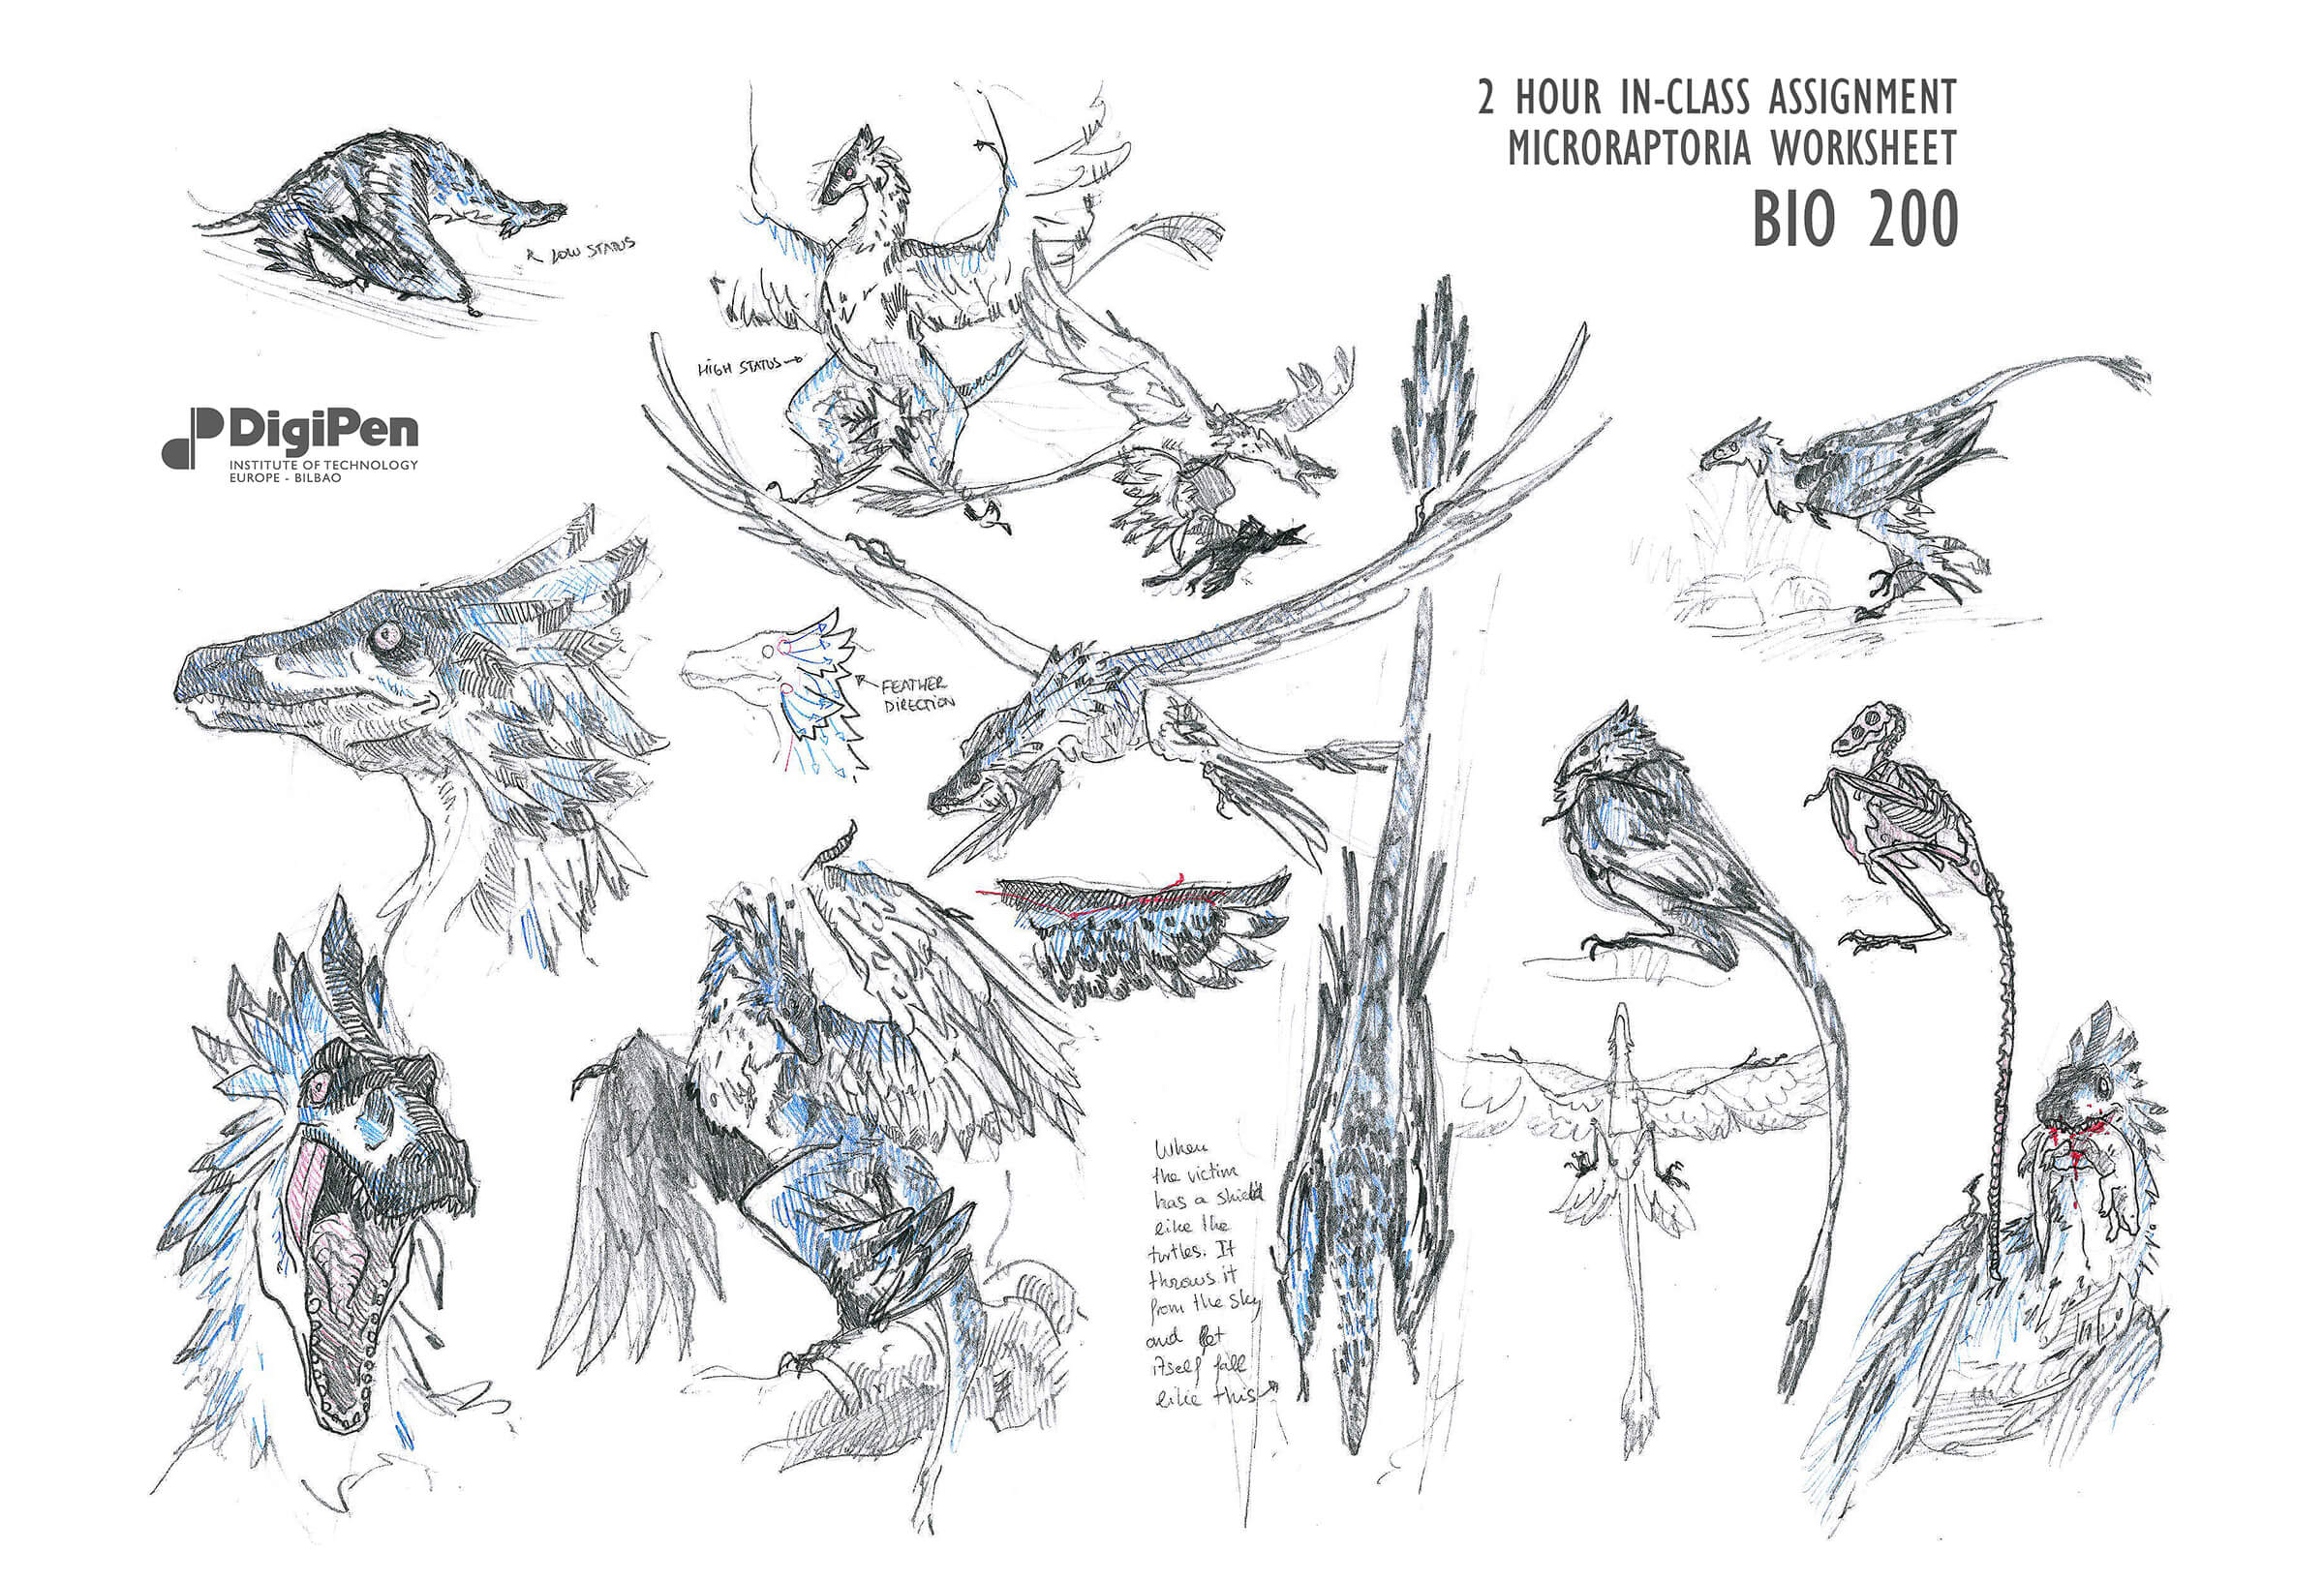 Black-and-white sketches of a feathered prehistoric raptor in poses such as flight, perching, eating, and walking